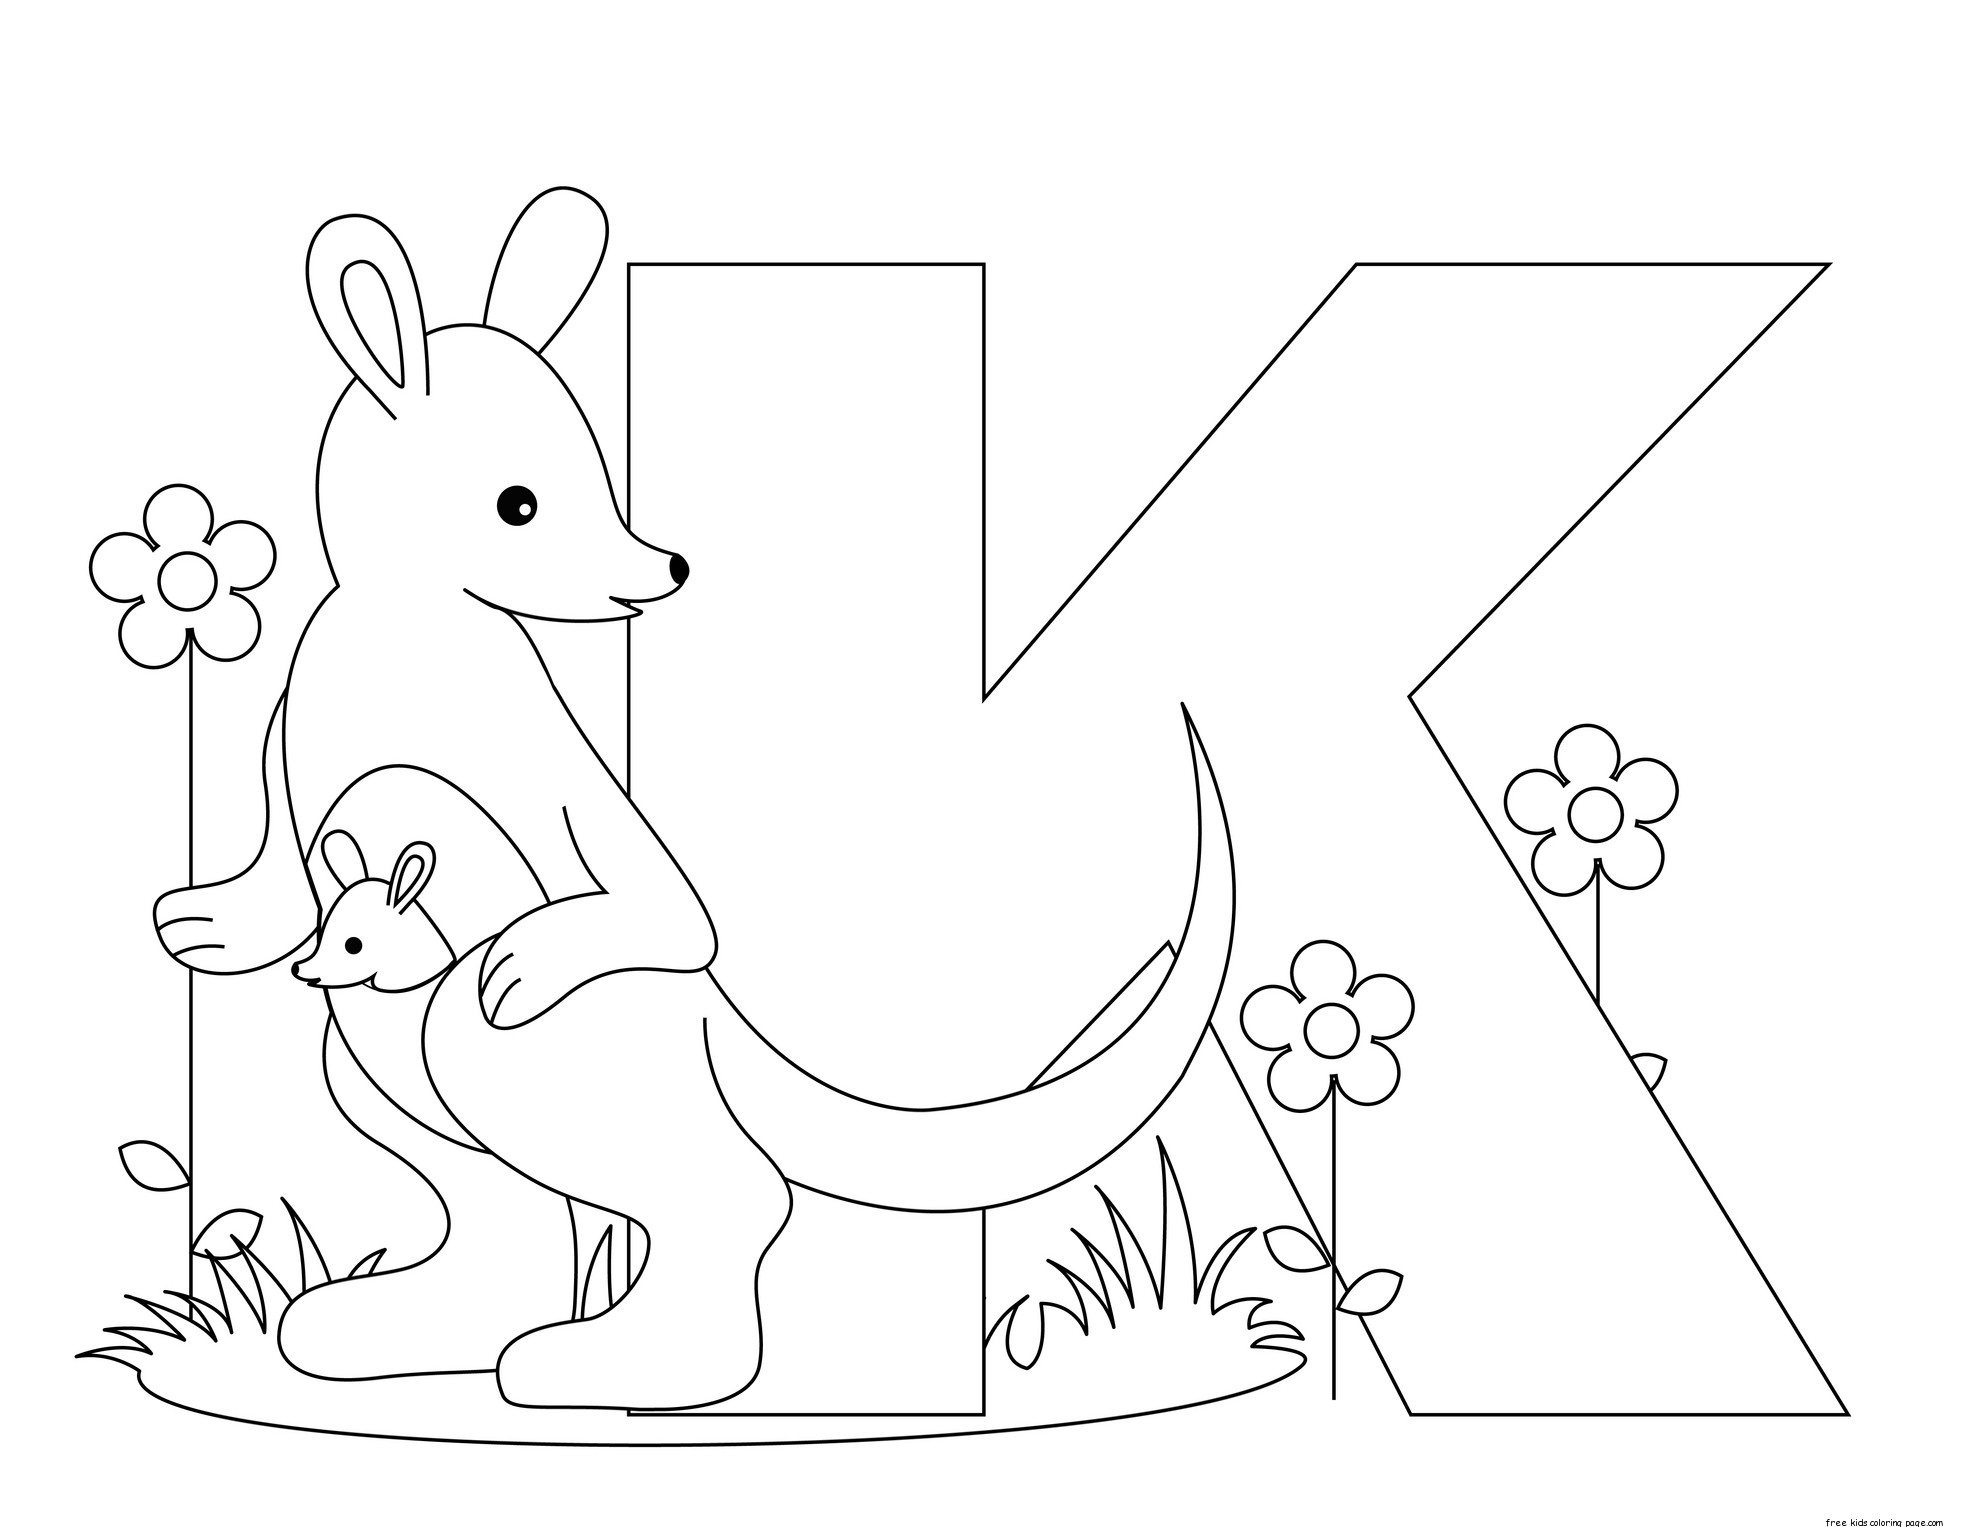 k for kangaroo coloring pages - photo#26